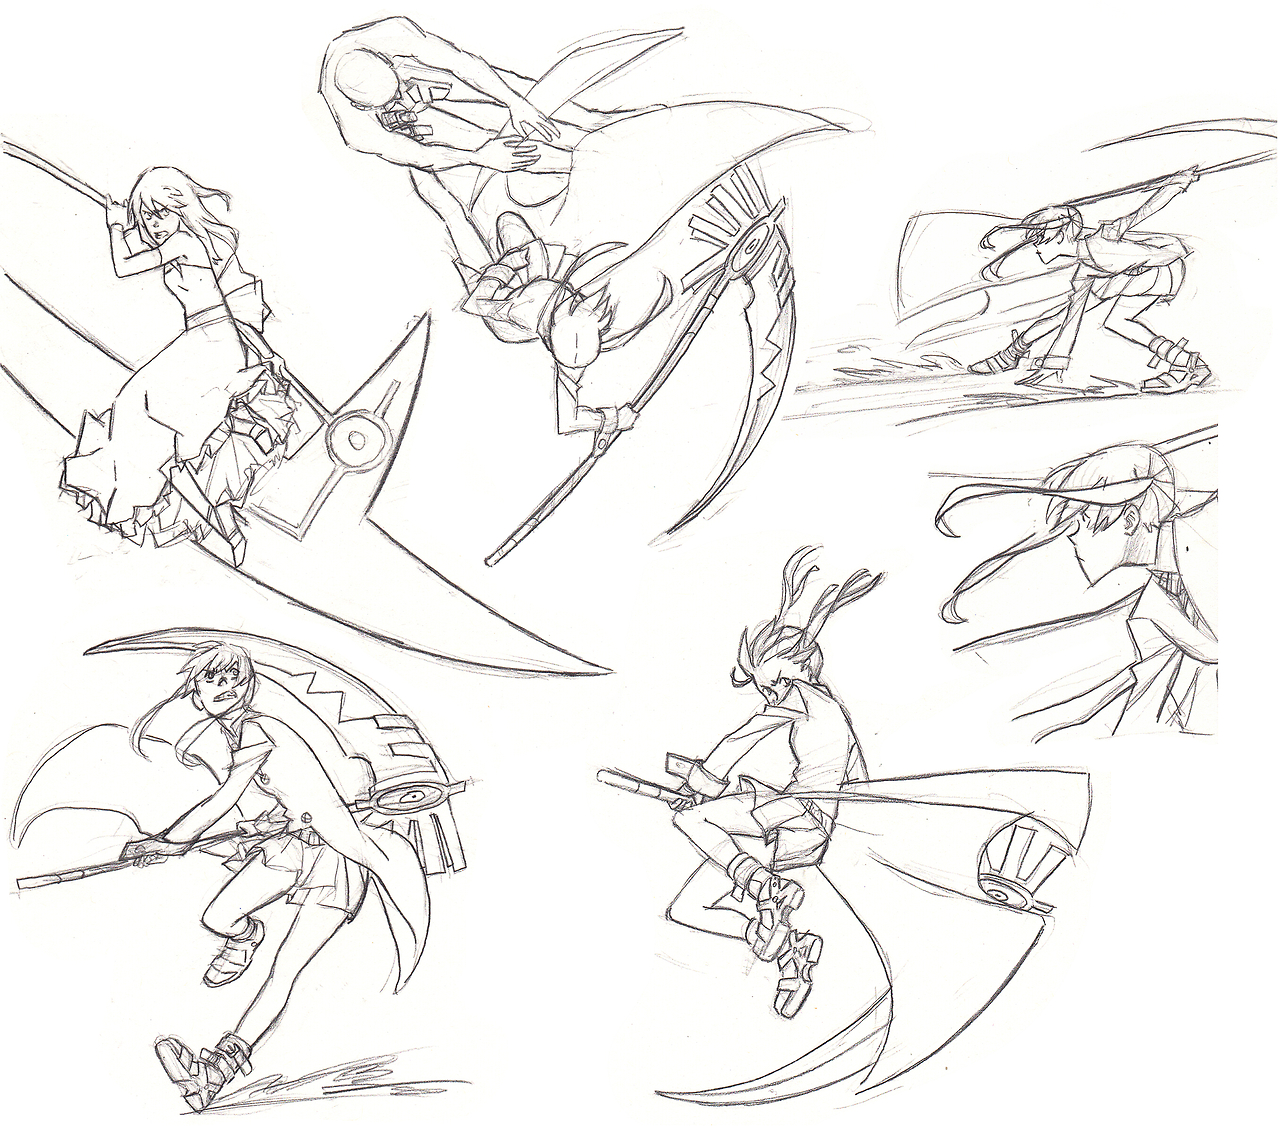 Drawn scythe battle Jazzie560 action/fight poses action/fight in